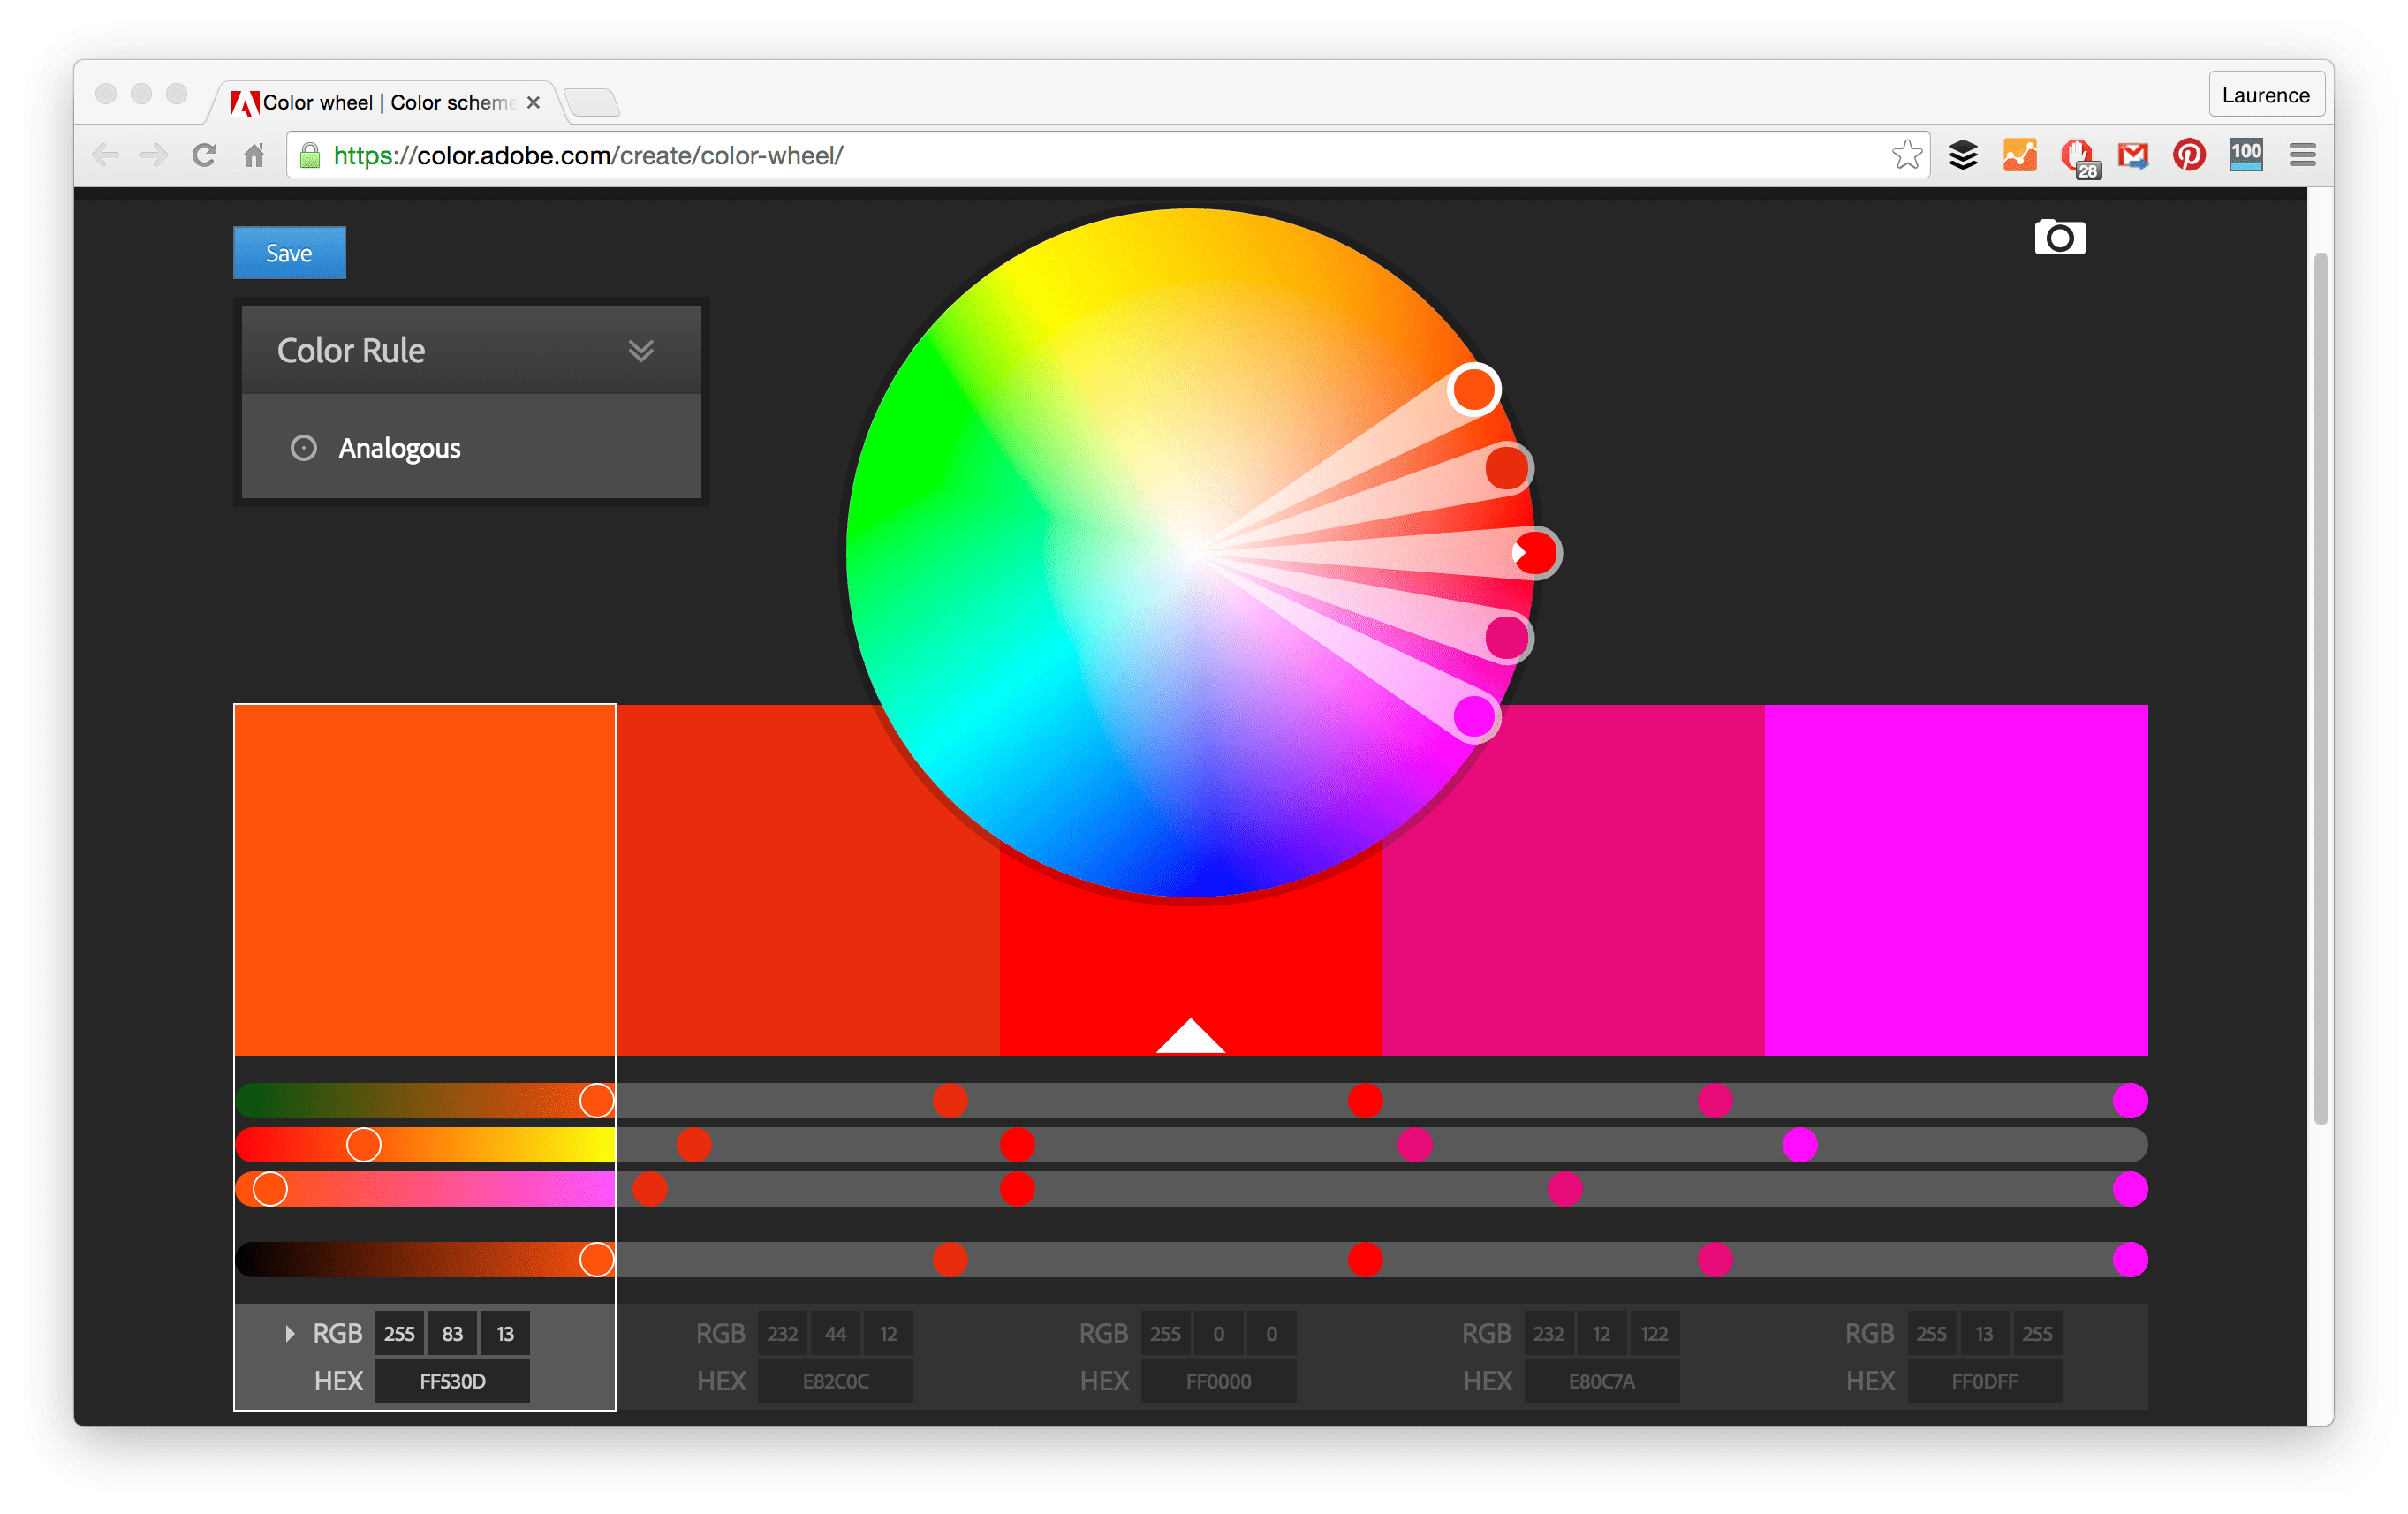 Online color mixer tool - Adobe Color Wheel